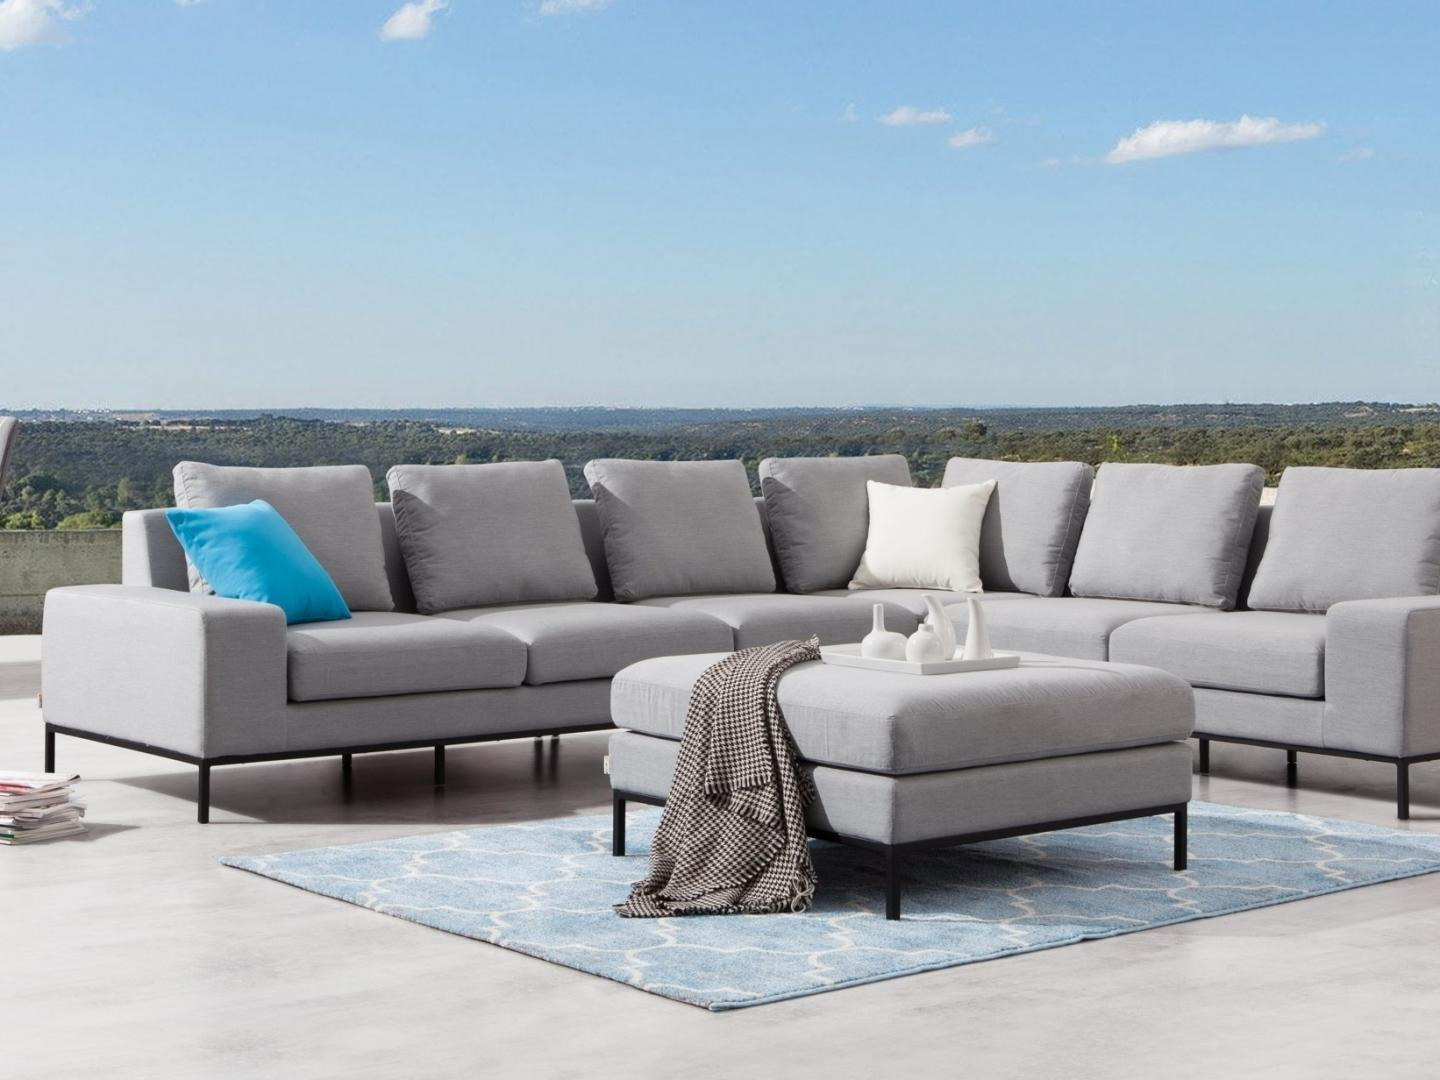 outdoor sofas brisbane sectional in grand rapids mi furniture specialists australia lavita online s favourite